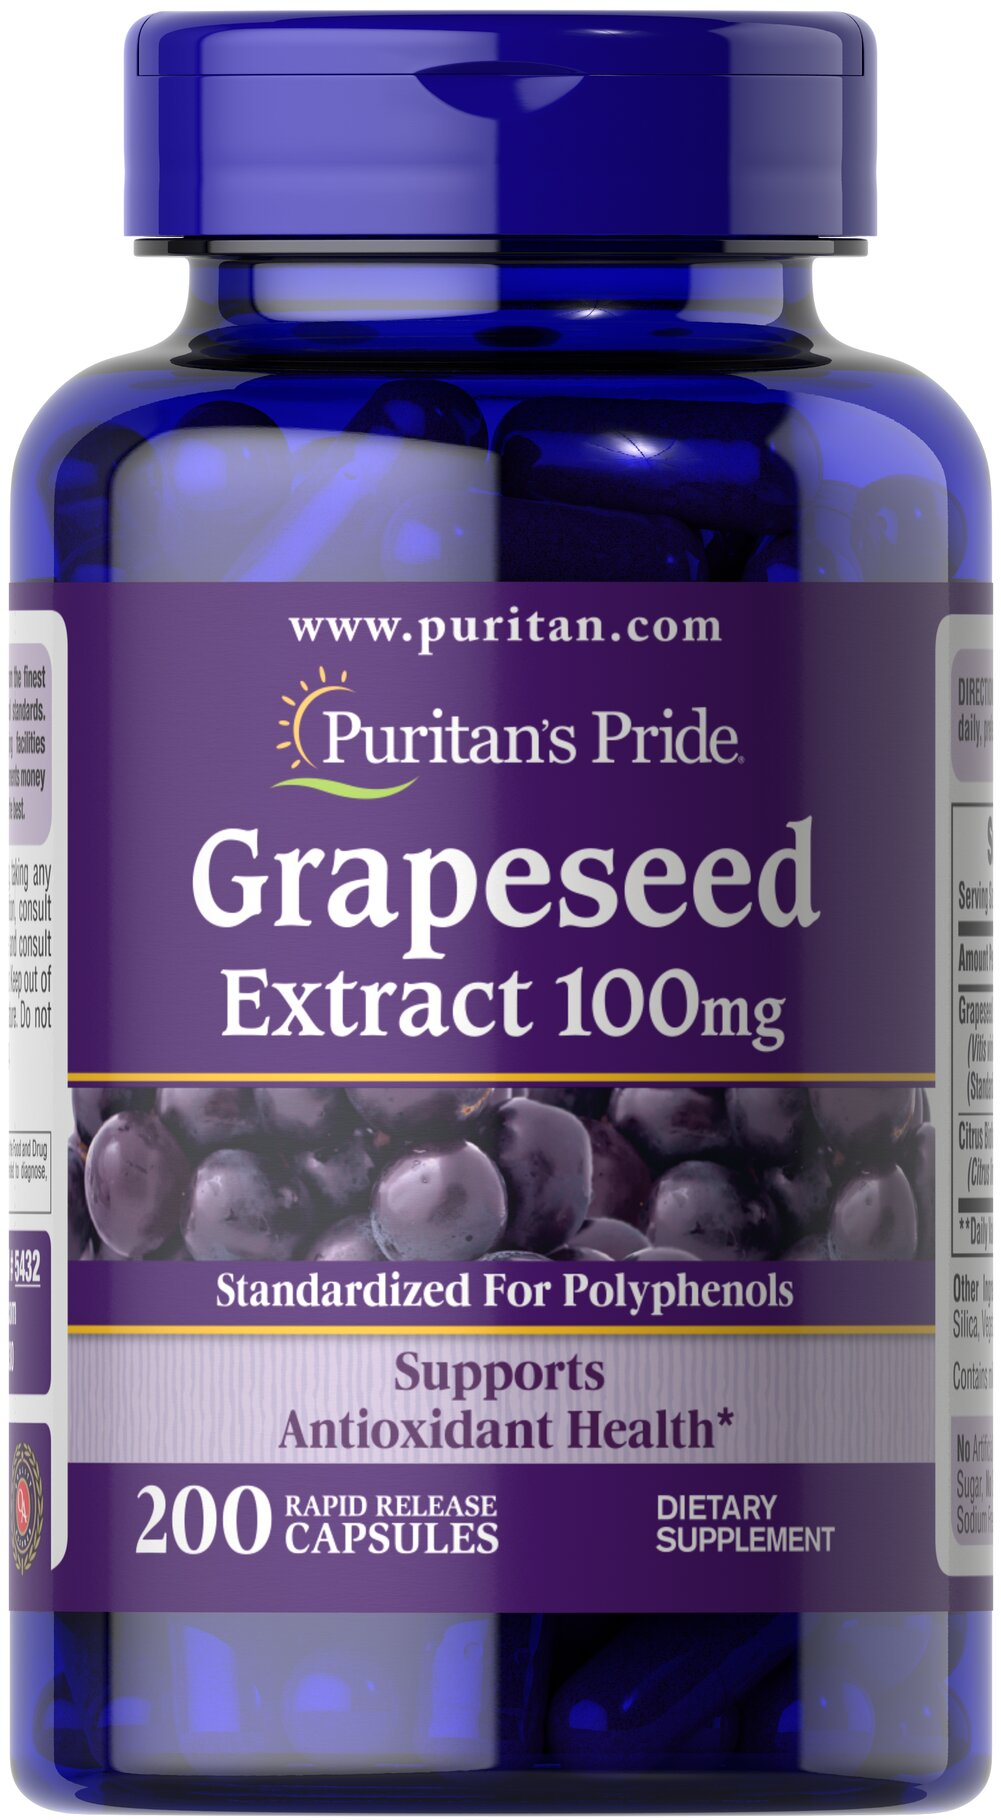 Grapeseed Extract 100 mg <p><strong></strong>Grapeseed Extract helps support antioxidant health.** Antioxidants are nutrients that help to counter the destructive nature of free radicals and assist in maintaining good health.** Grapeseed extract contains oligomeric proanthocyanidins (OPCs), which are naturally occurring bioflavonoids. Standardized to contain 50% Polyphenols. Adults can take one capsule three times daily.</p> 200 Capsules 100 mg $34.99